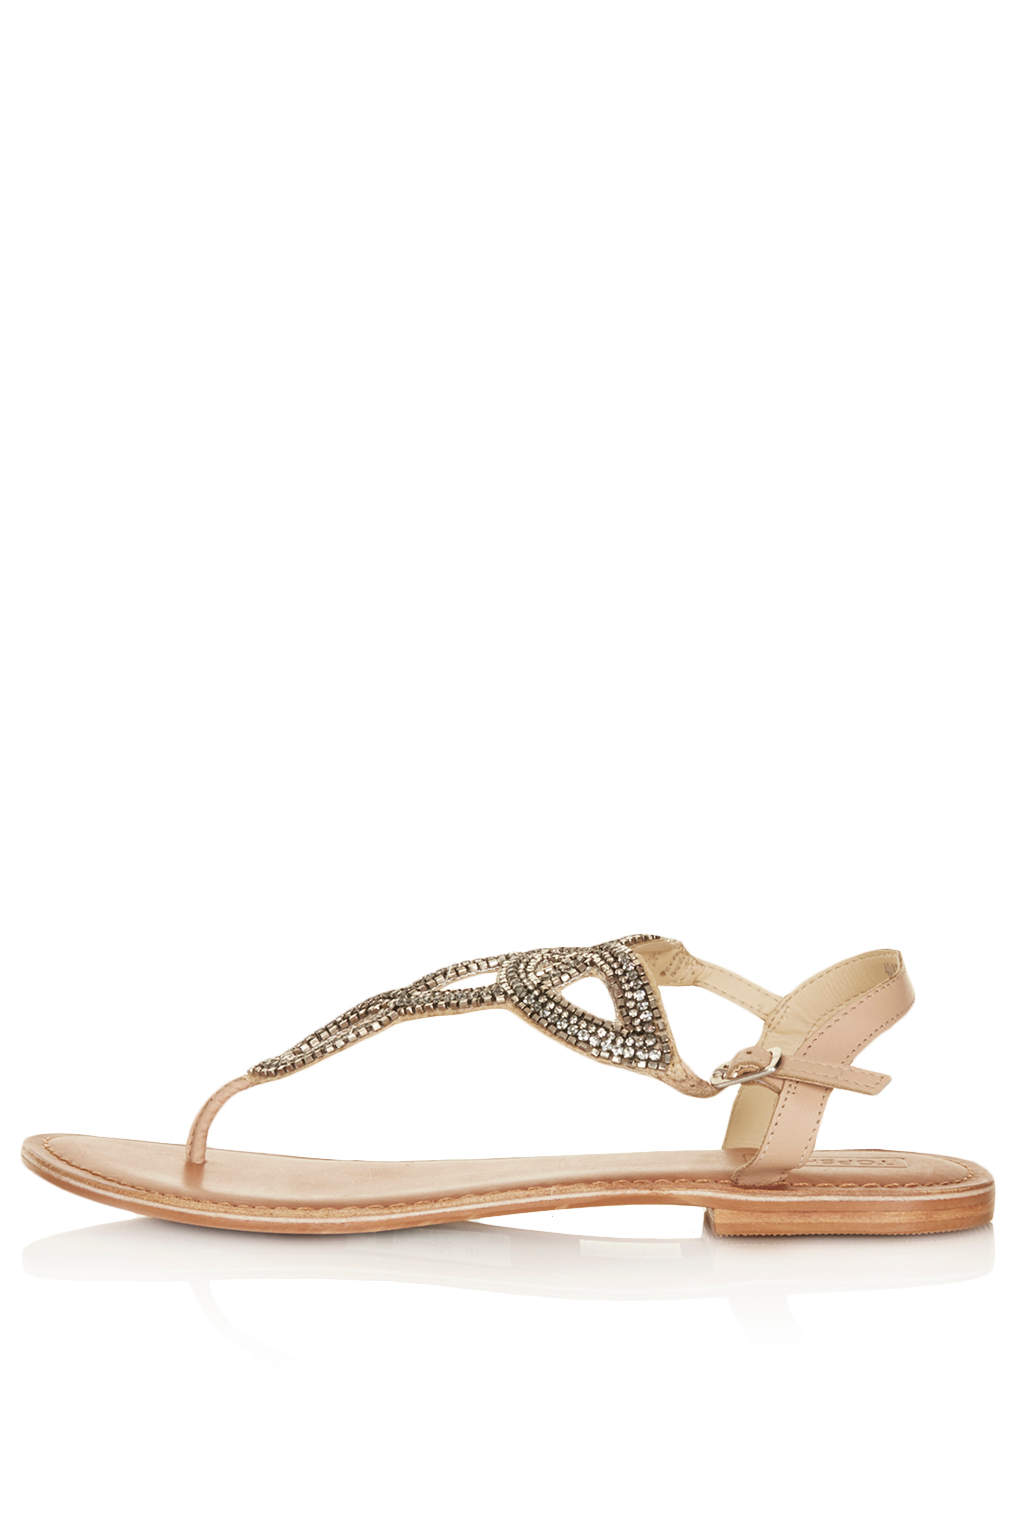 Hyde embellished sandals